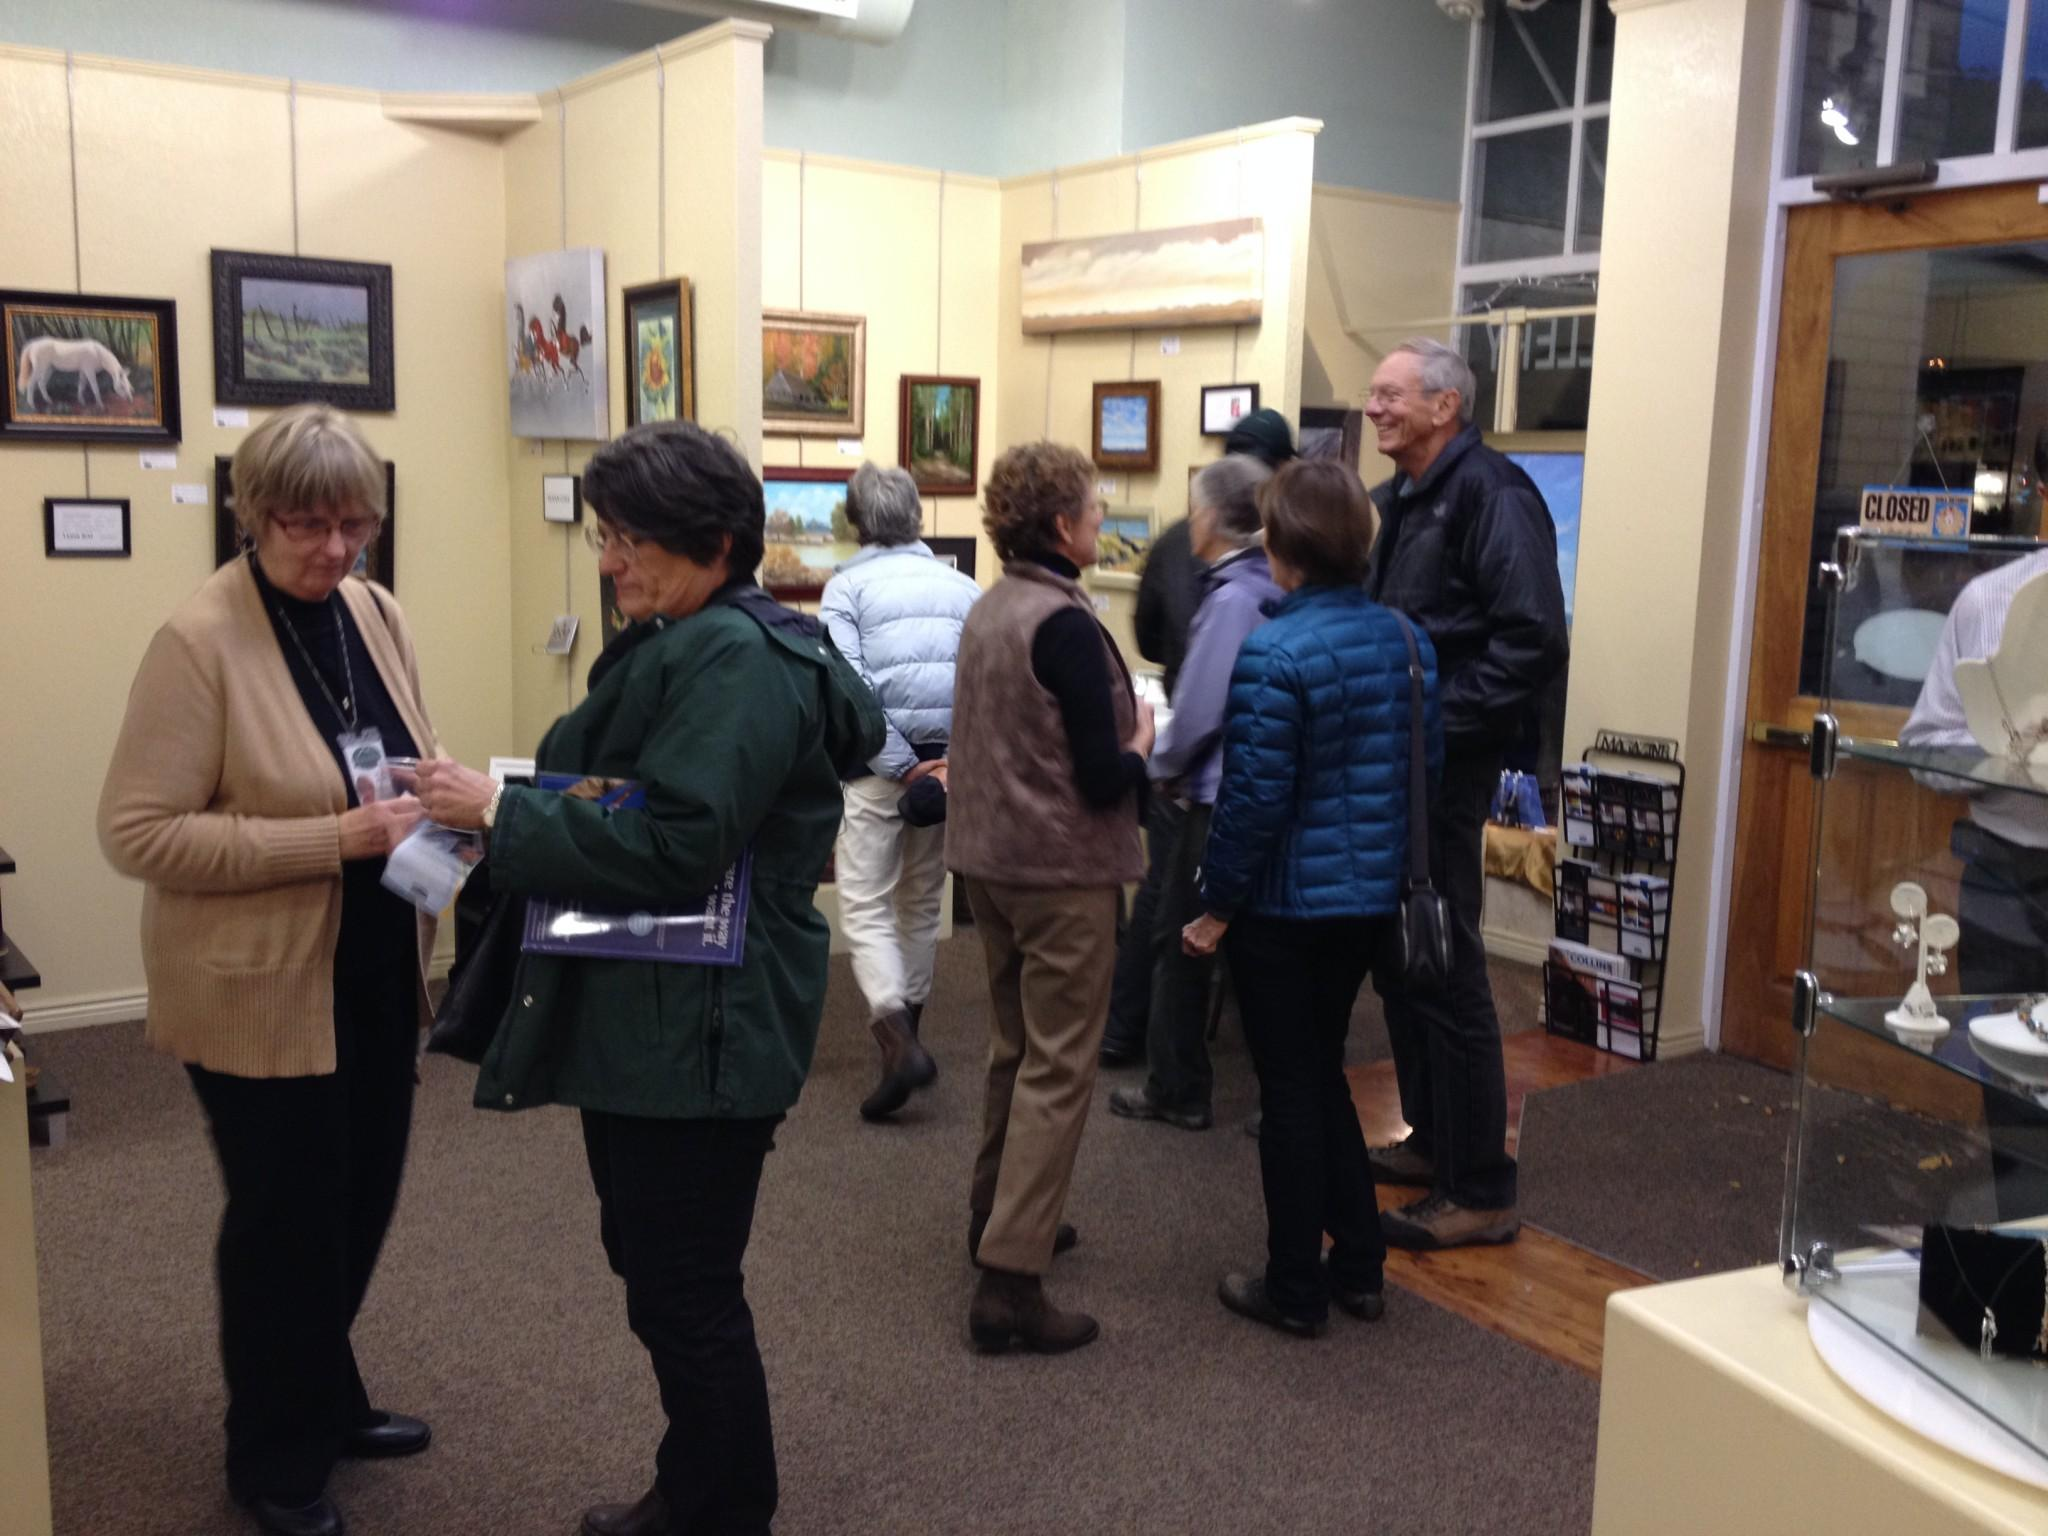 Every first Friday, residents of Fort Collins head to Old Town to check out the latest art. Photo by John Sheesley